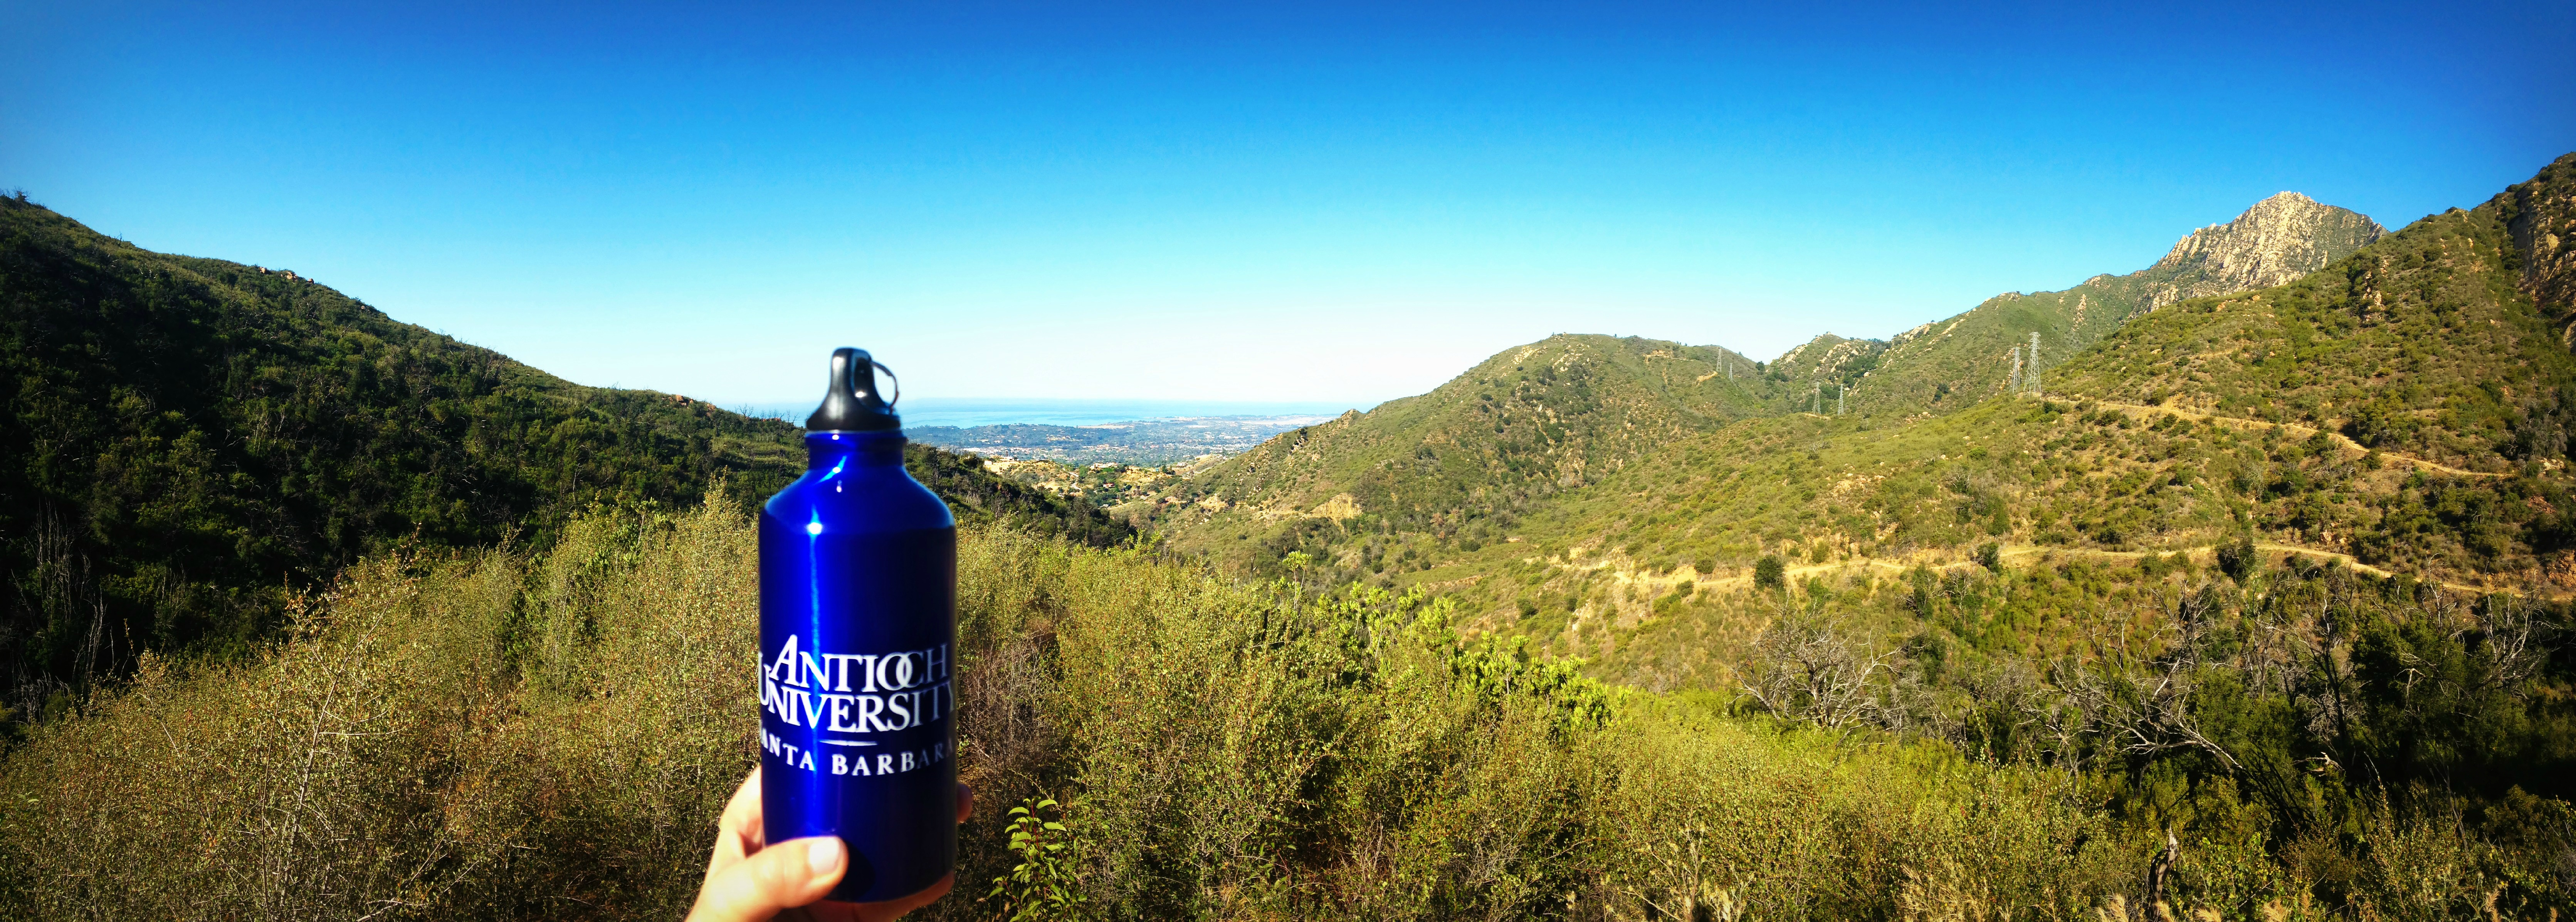 """Keeping my daily routine eco-friendly while enjoying the scenic view from Mission Canyon."" -Kari Jensen"